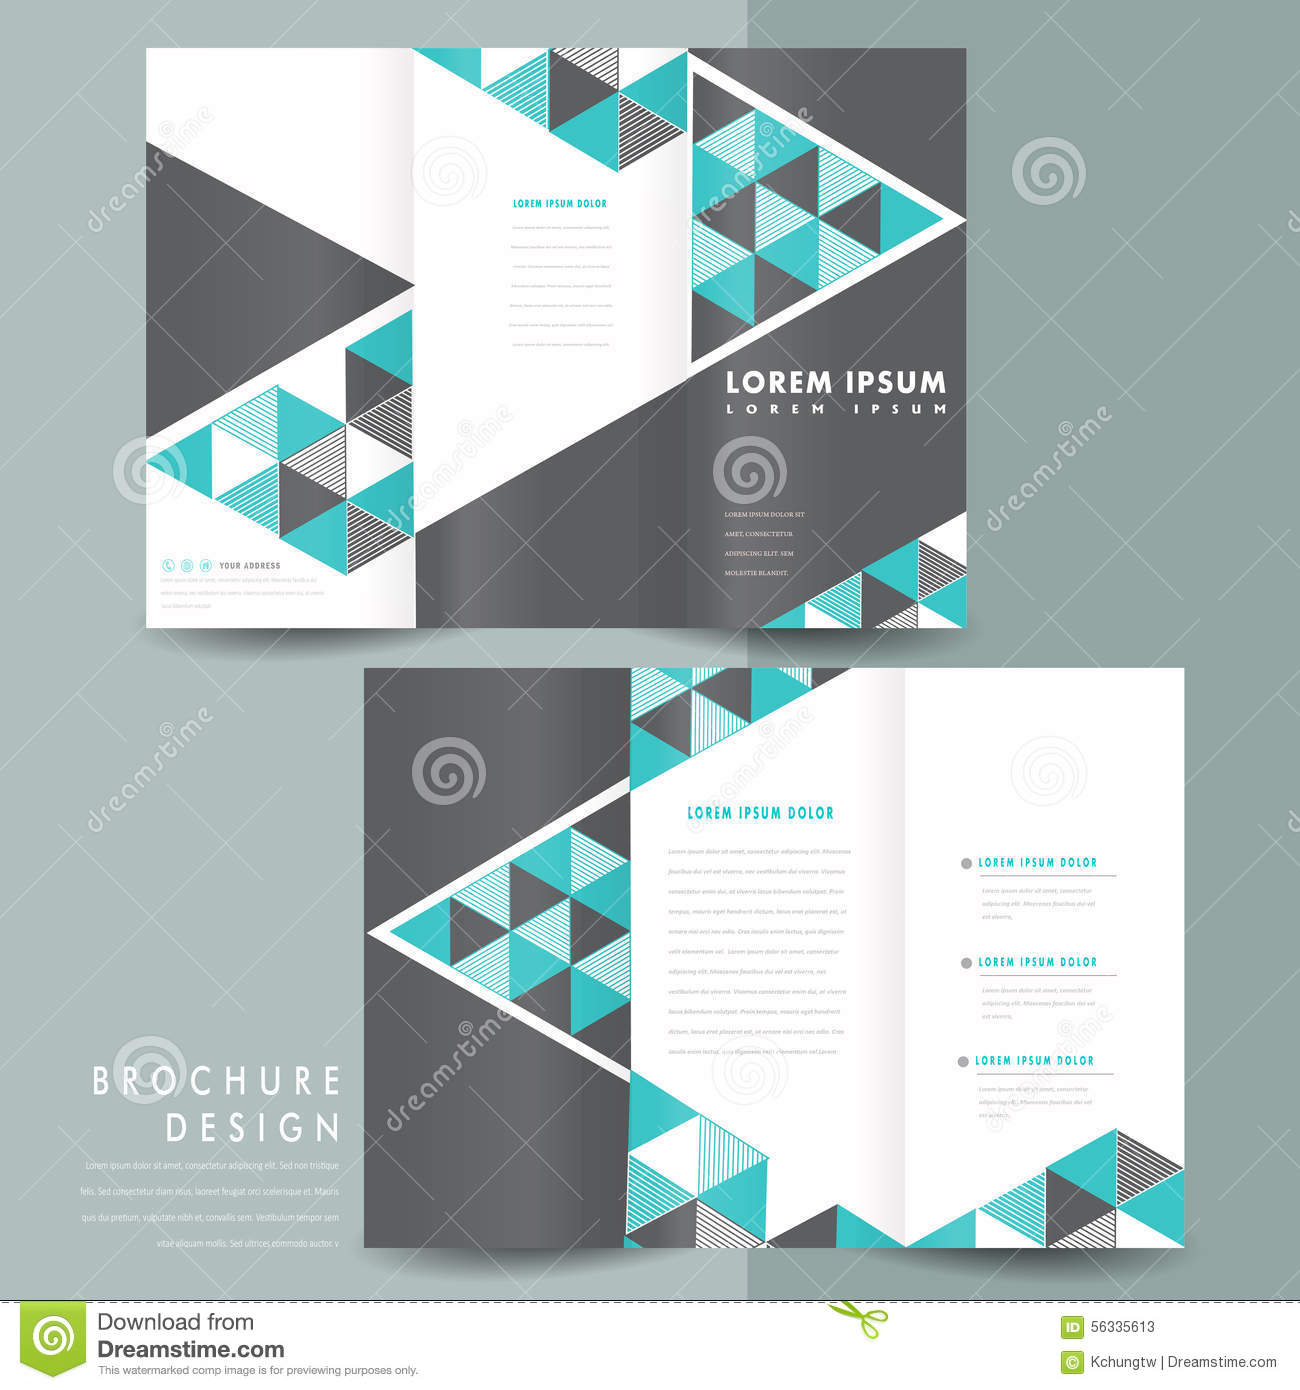 Fold Flyer Template Kleobeachfixco - 3 folded brochure template